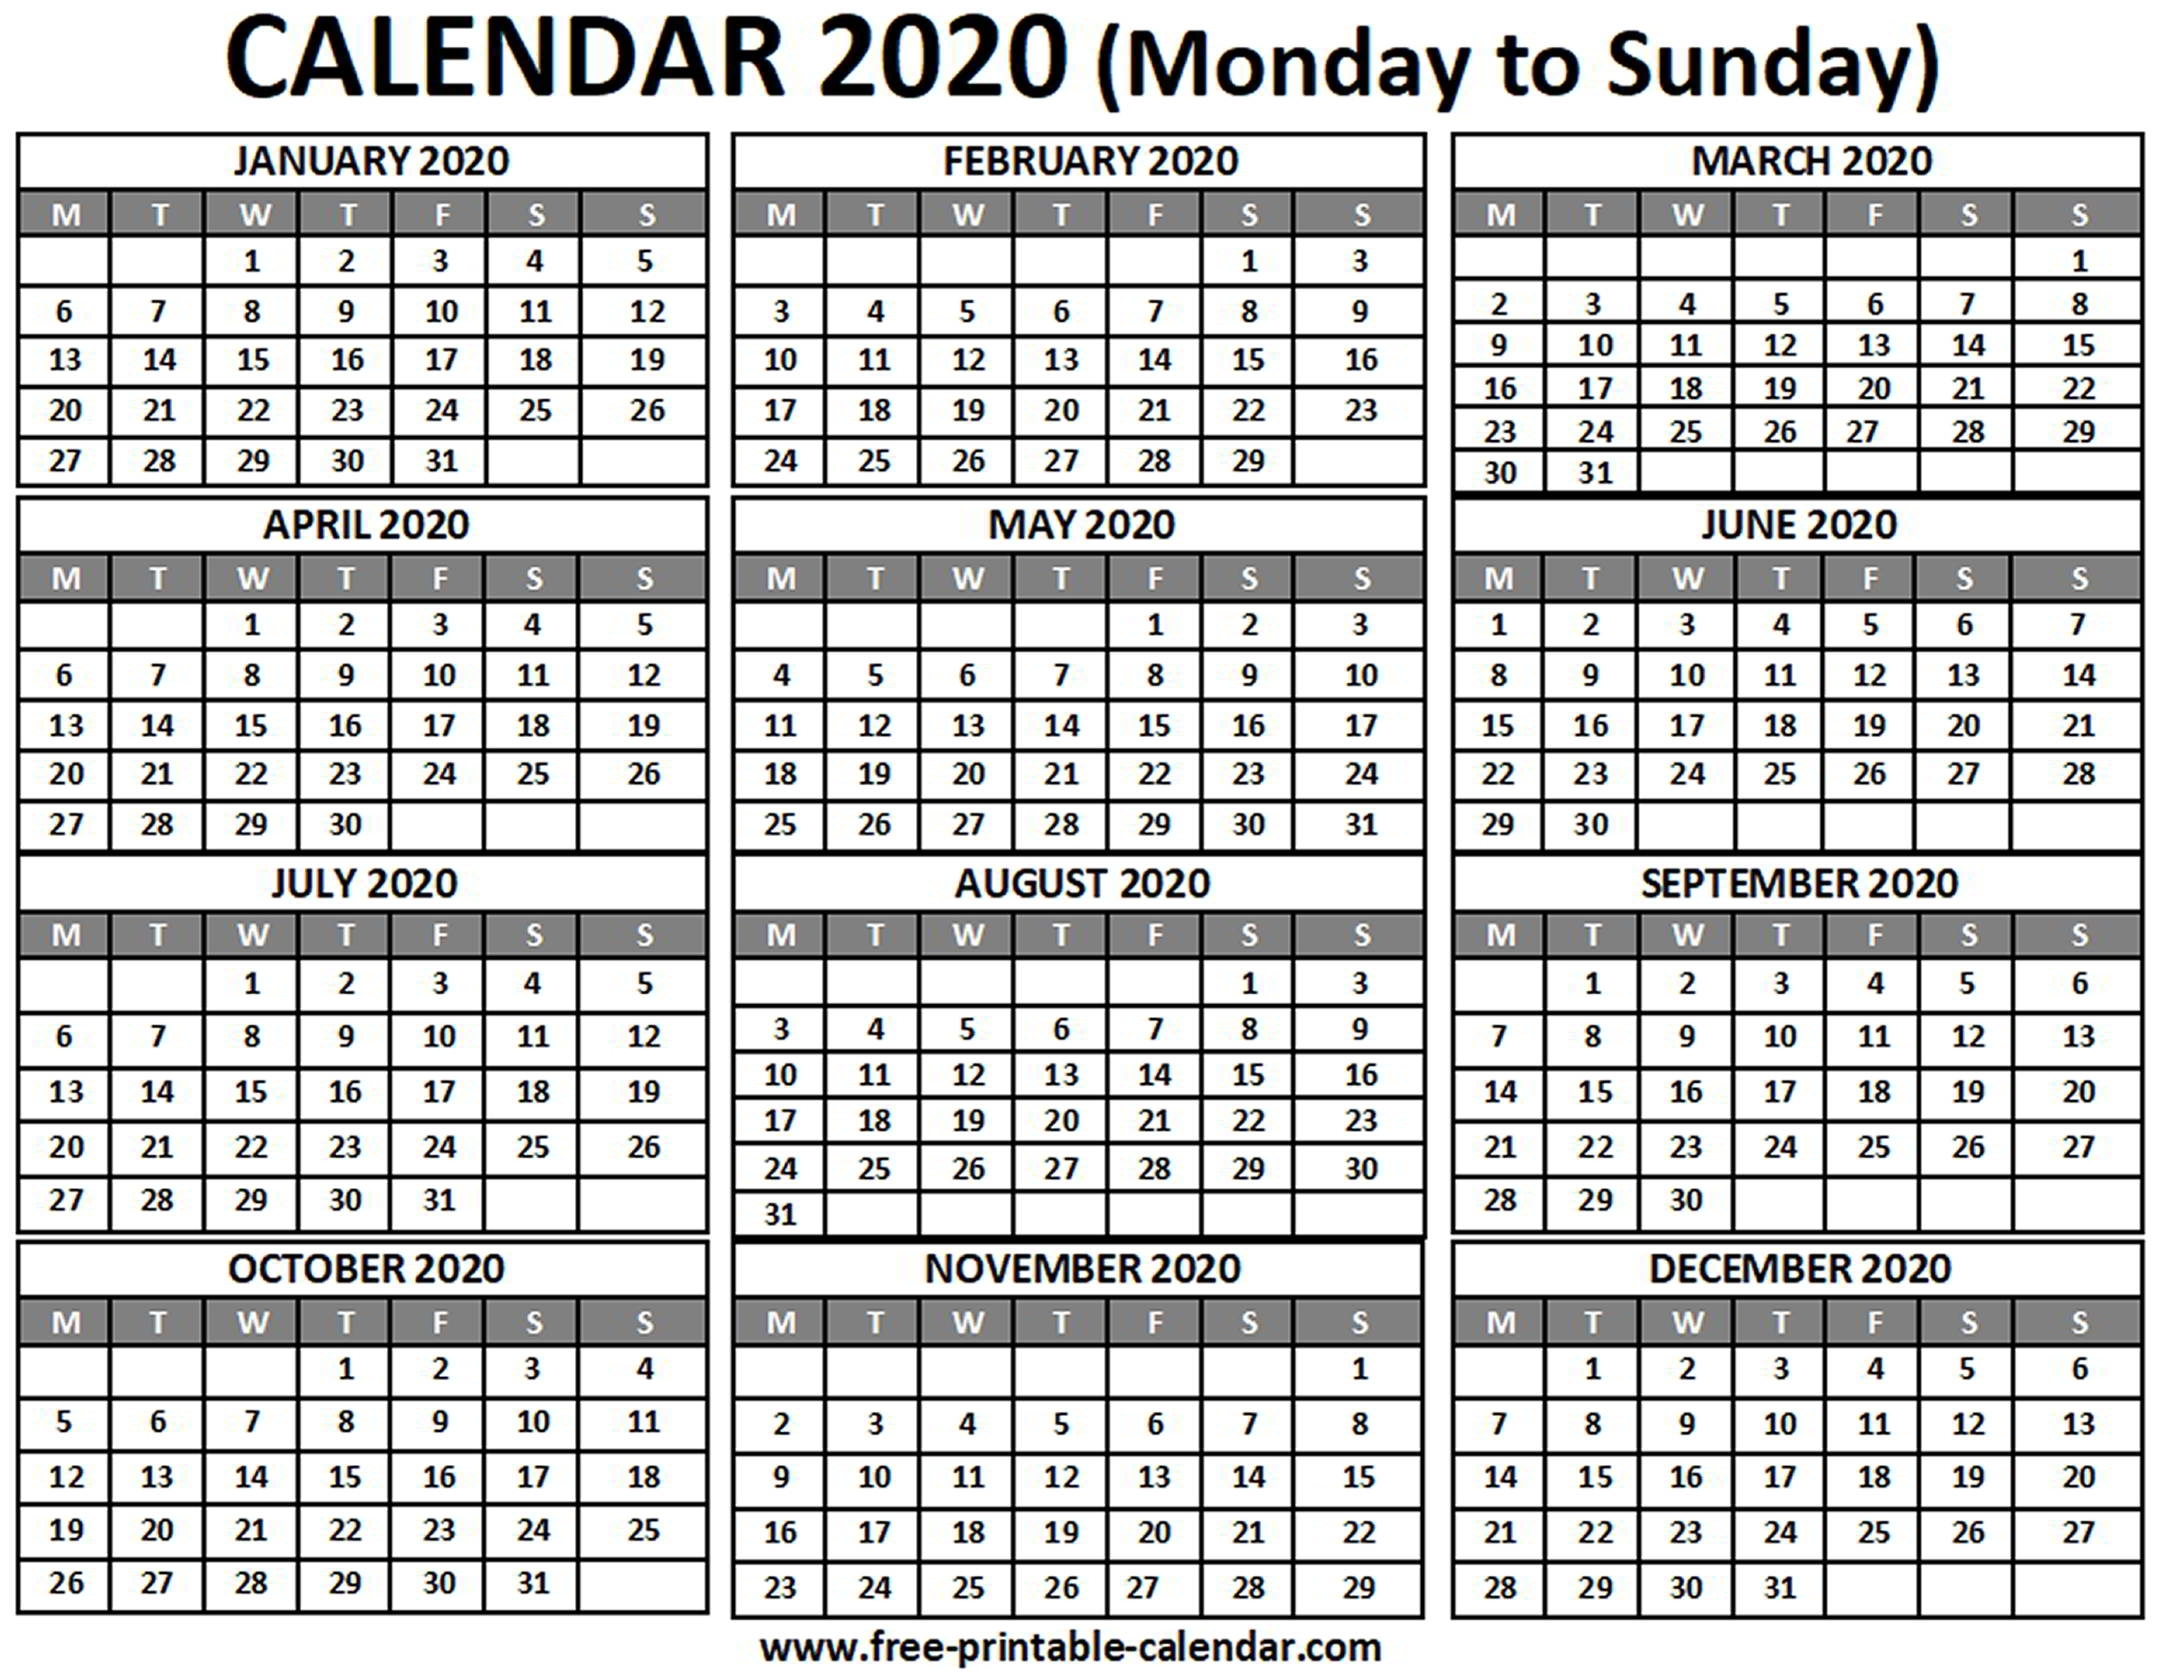 2020 Calendar - Free-Printable-Calendar with Free 2020 Calender Starting With Monday